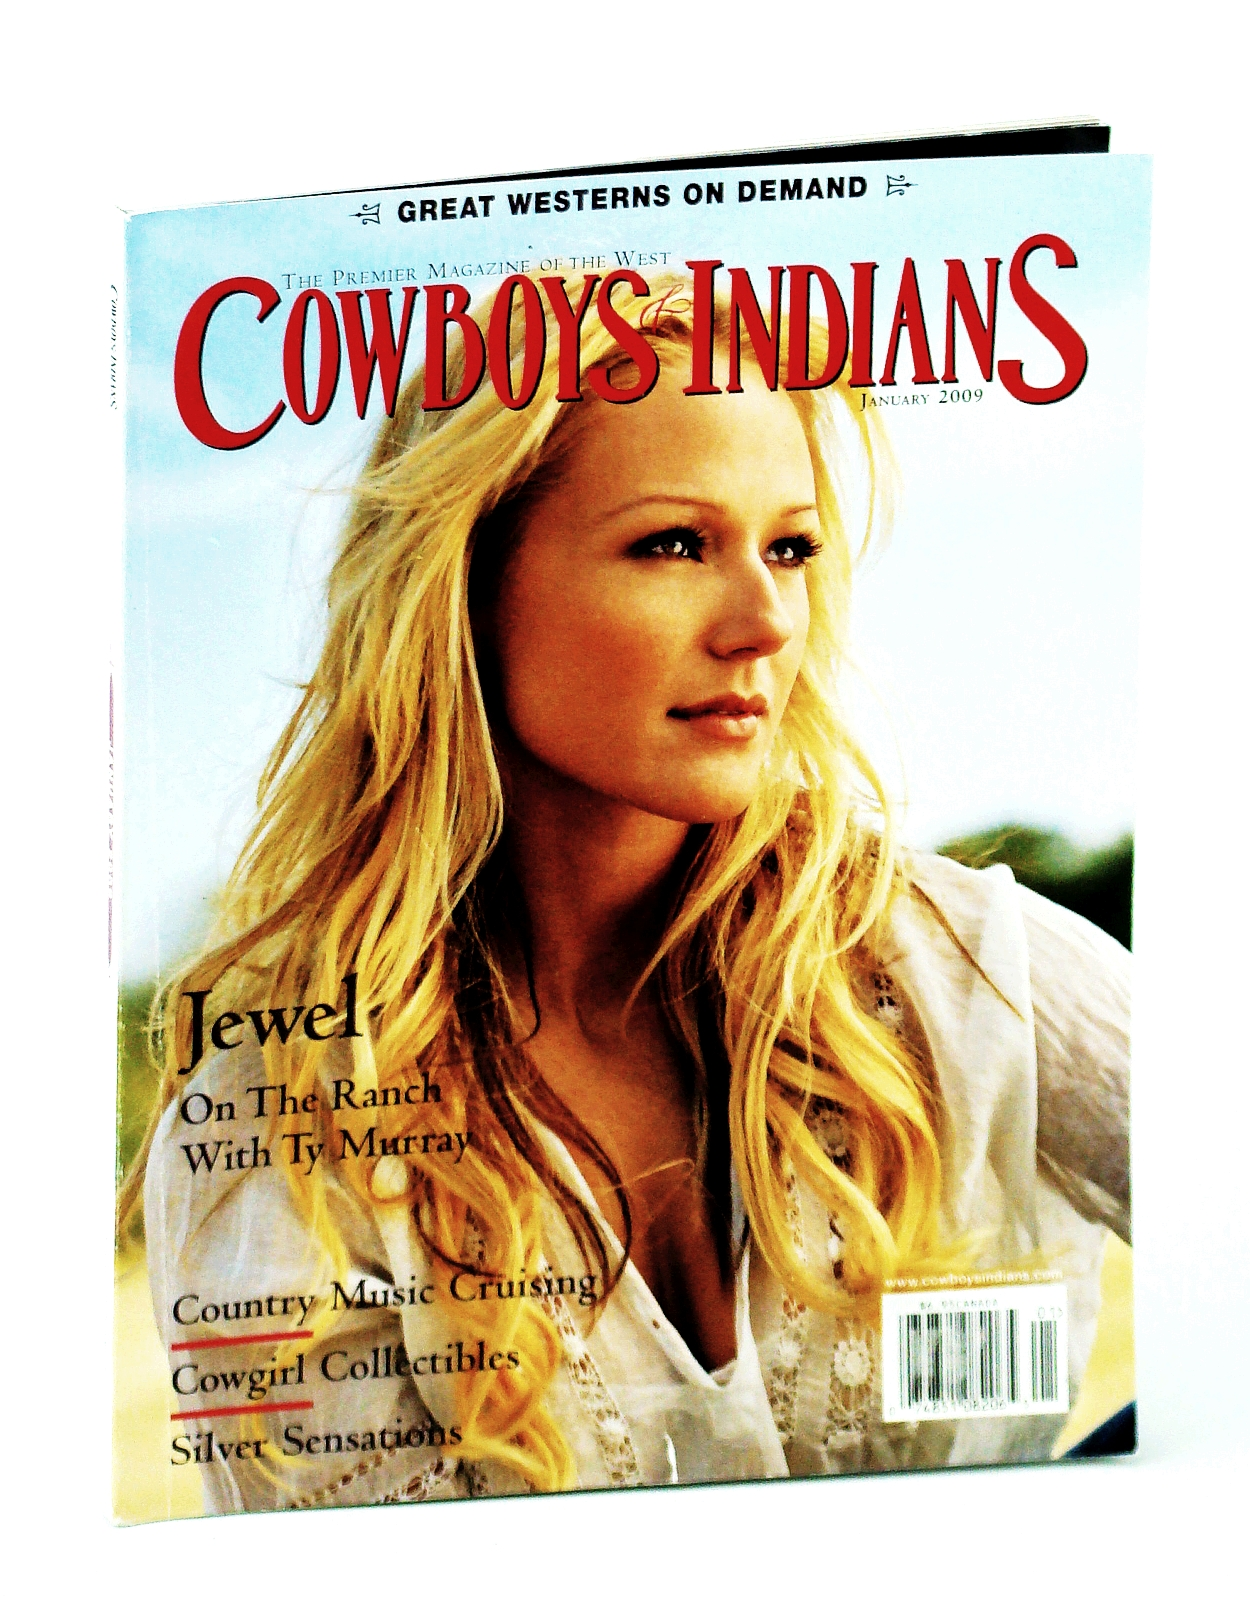 Image for Cowboys and Indians January 2009 (-JEWEL- ON THE RANCH WITH TY MURRAY)